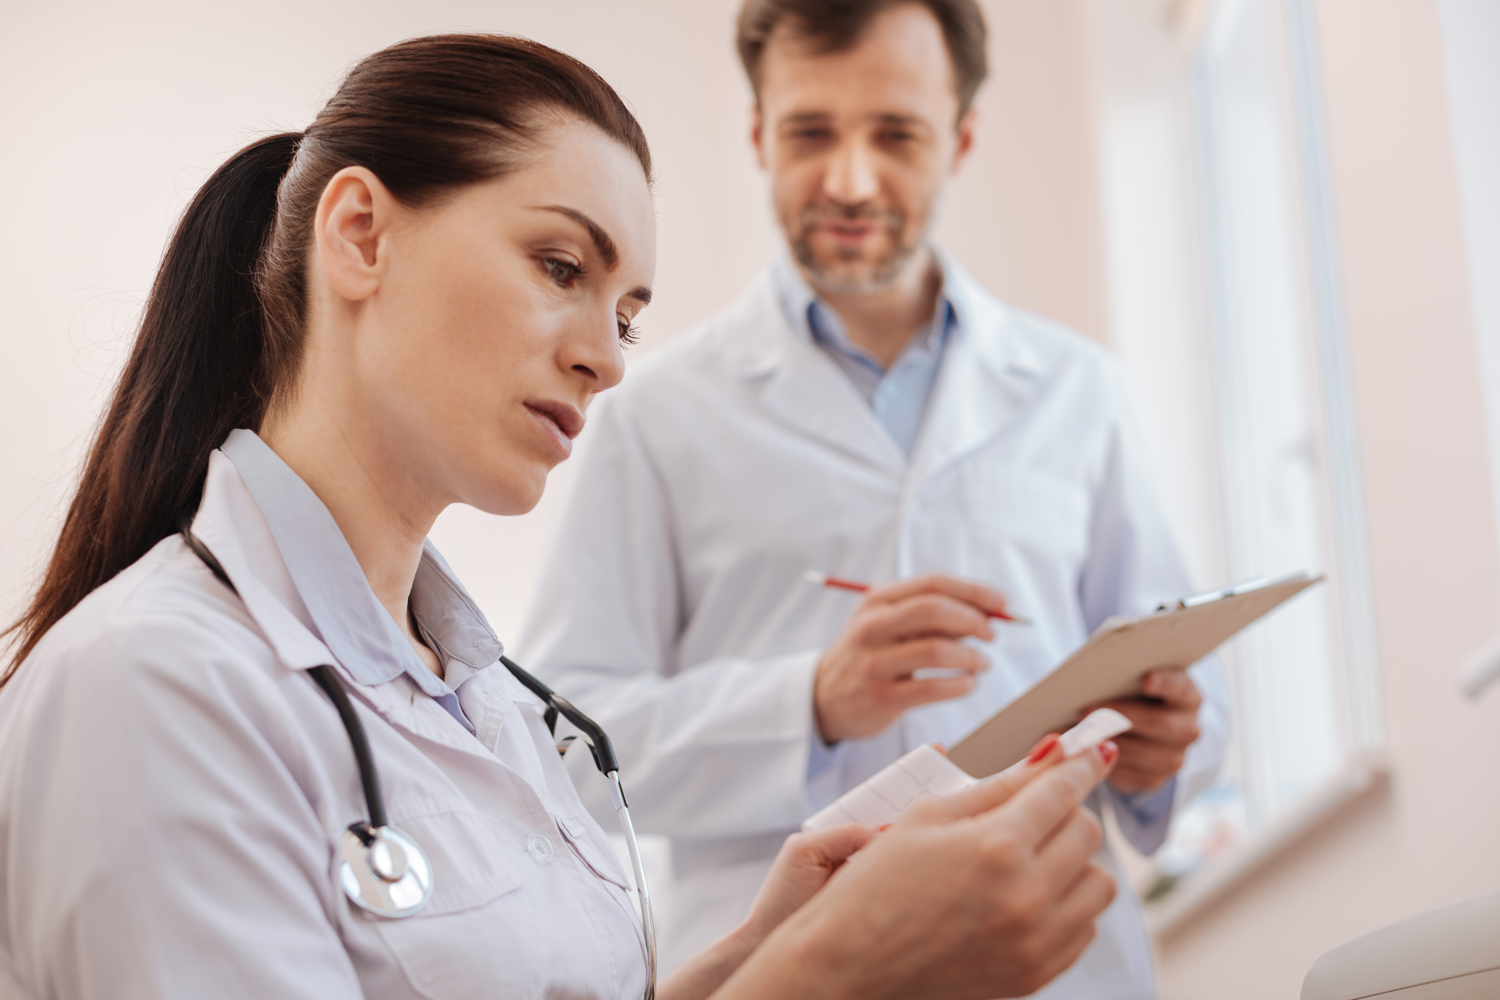 Tips for Finding Work As a New Nurse Practitioner Grad